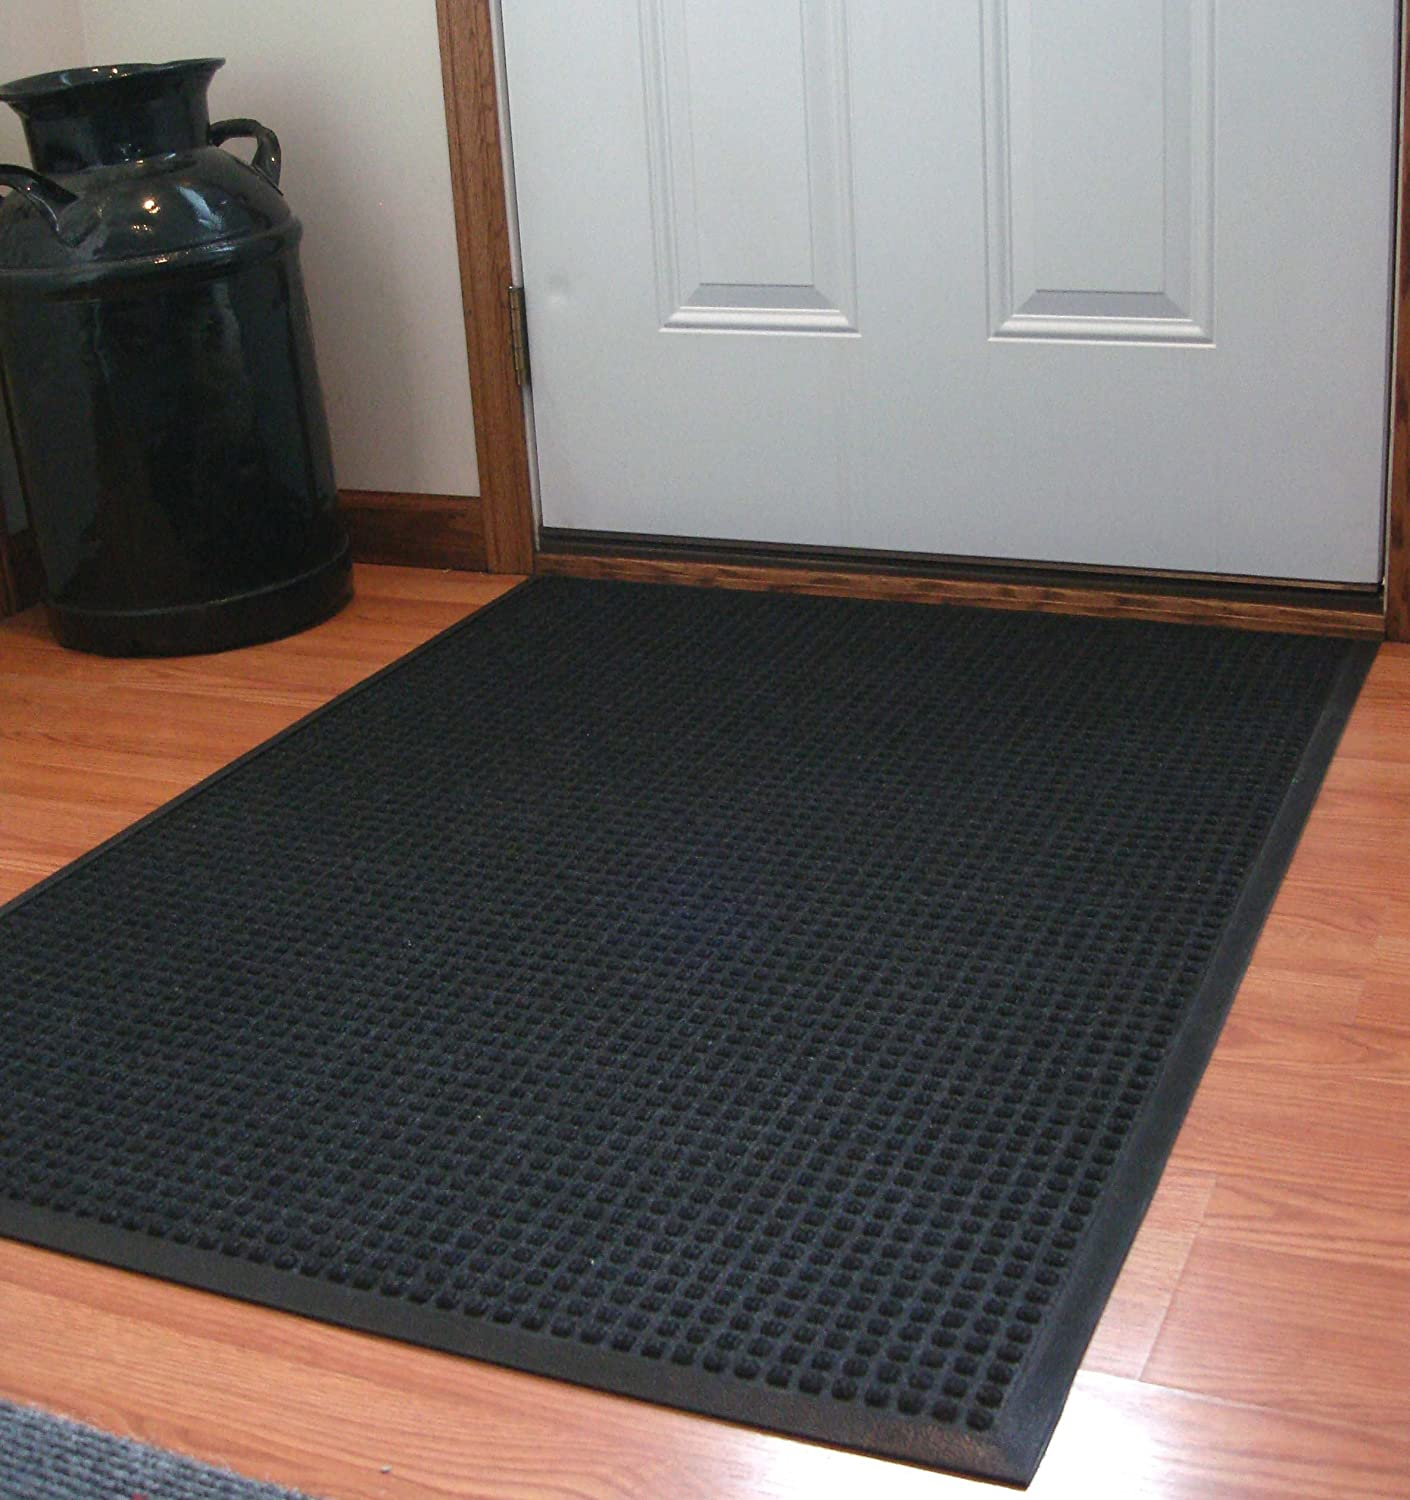 Brown Durable Stop-N-Dry Indoor Rubber Backed Carpet Entrance Mat 3 x 4